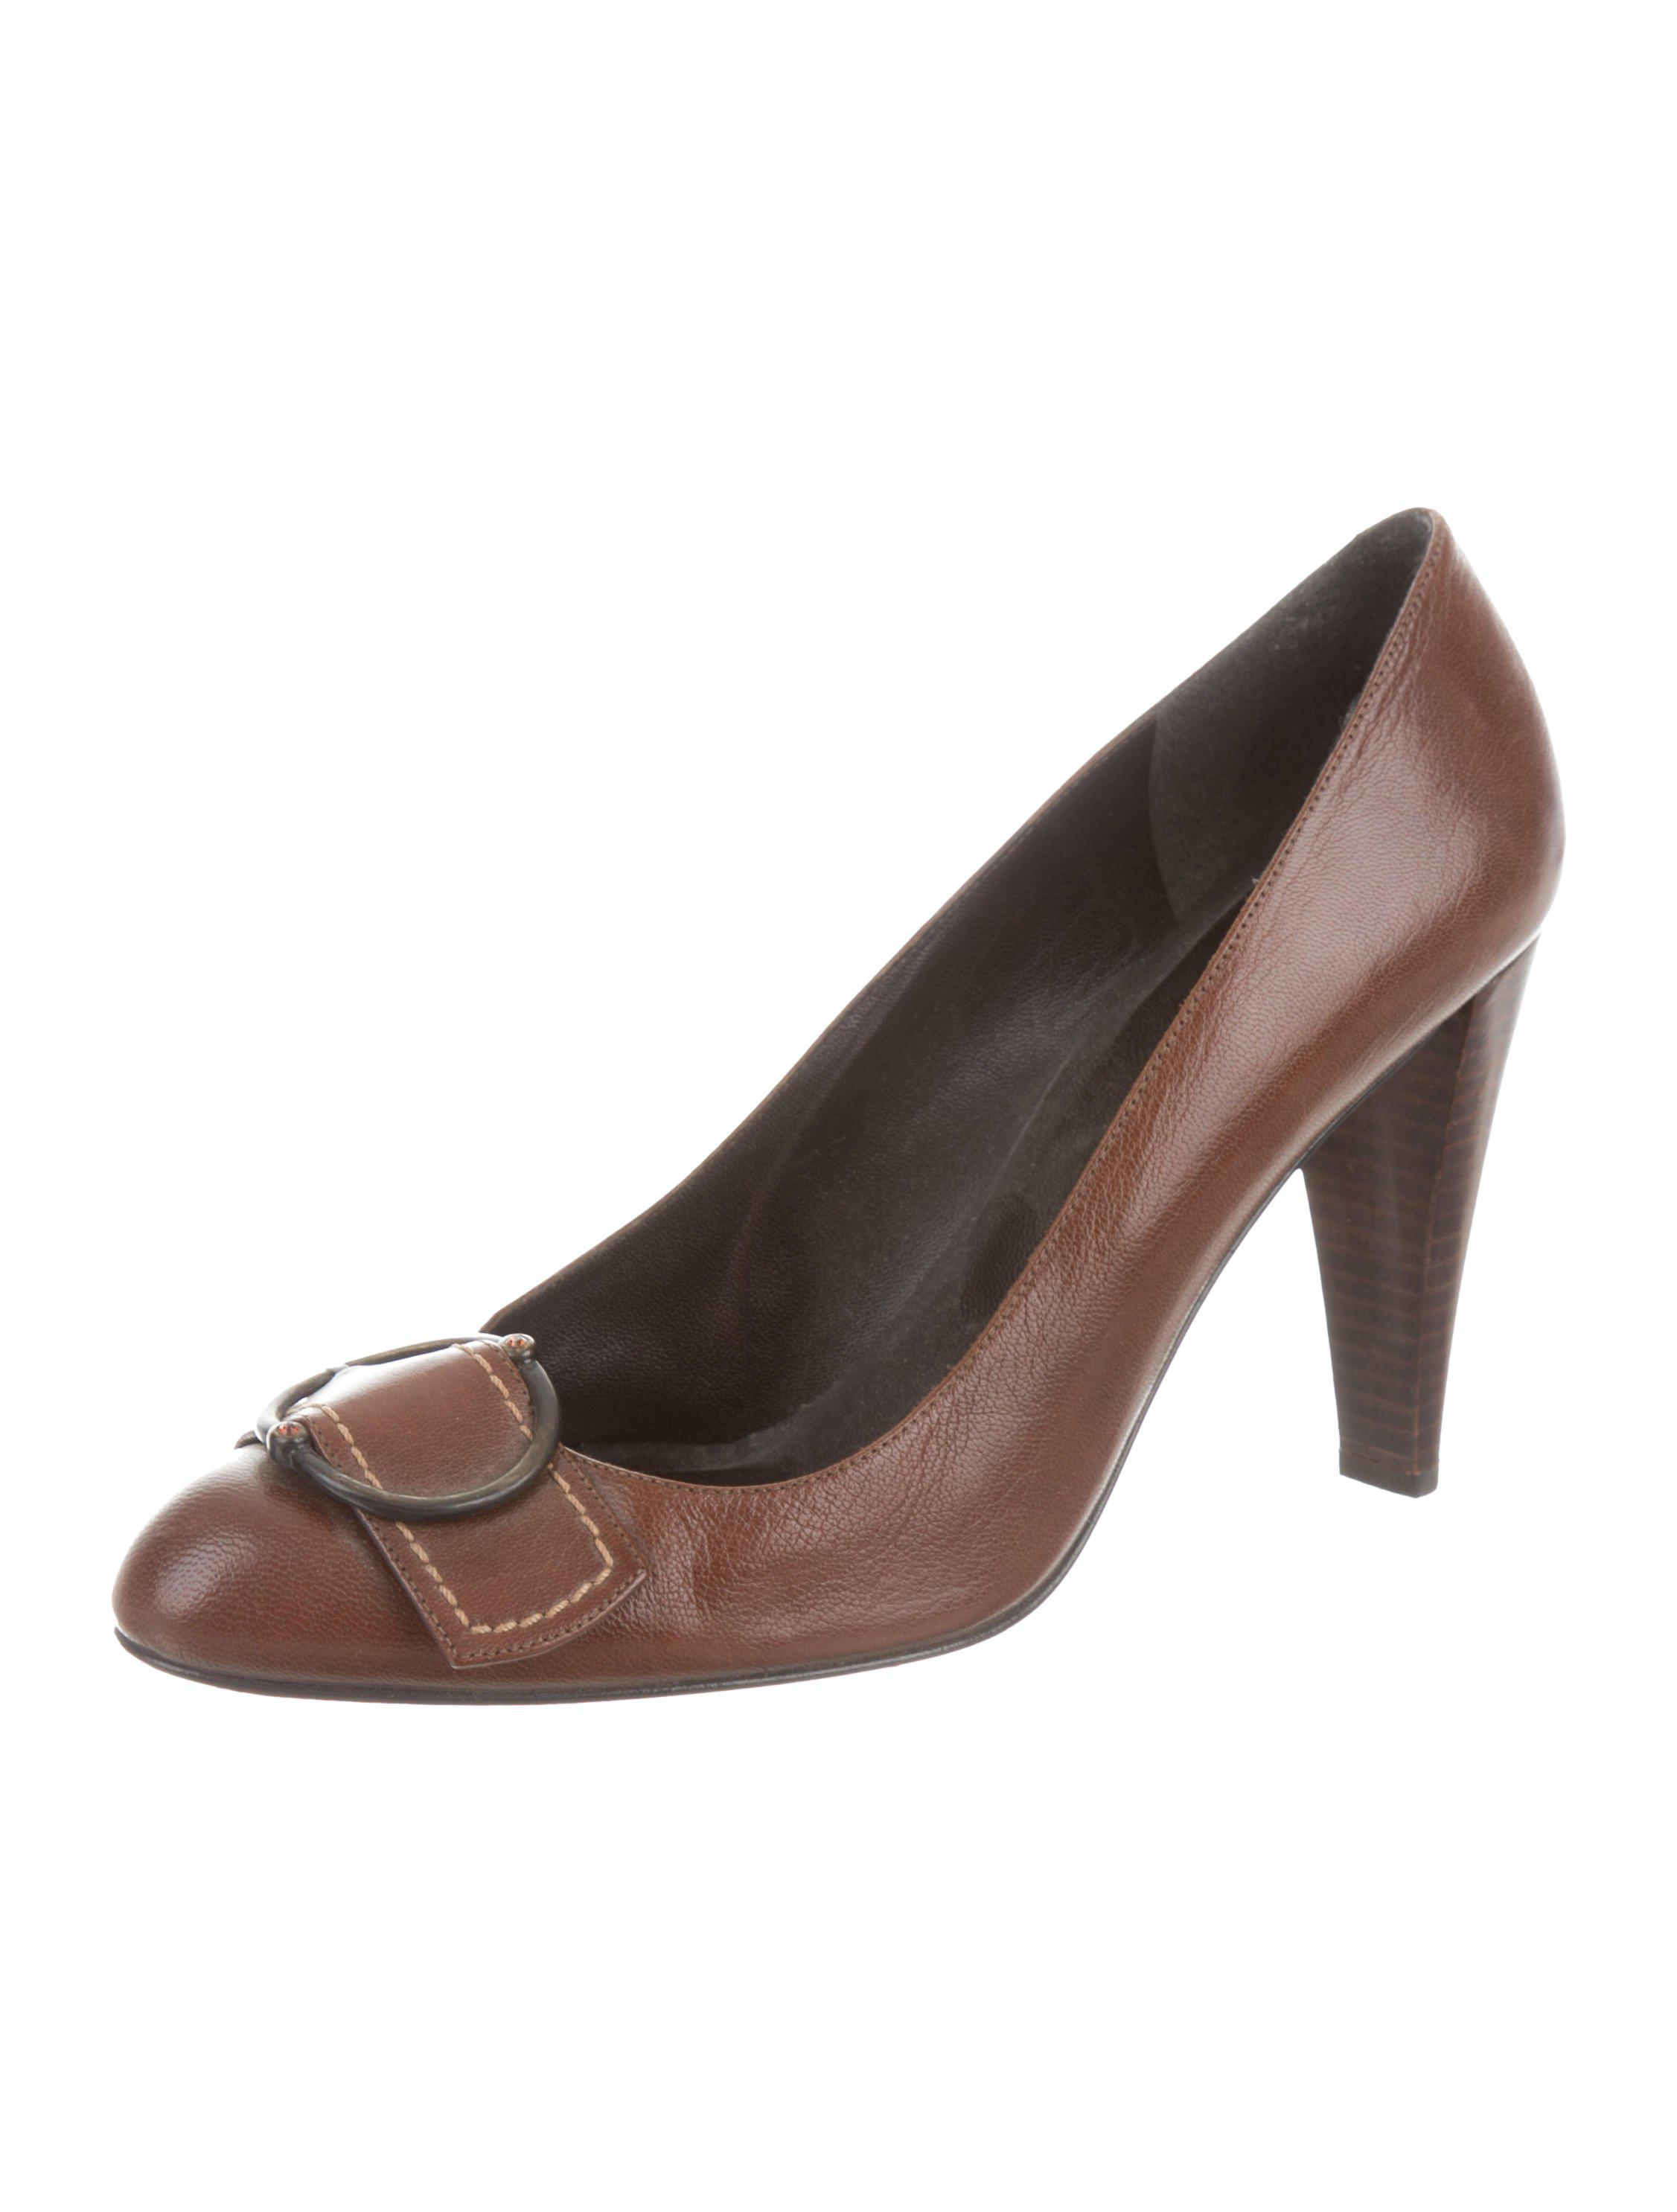 best prices cheap online for nice cheap online Stuart Weitzman Buckle-Accented Round-Toe Pumps buy cheap footlocker pictures 7ANbLwbdcE